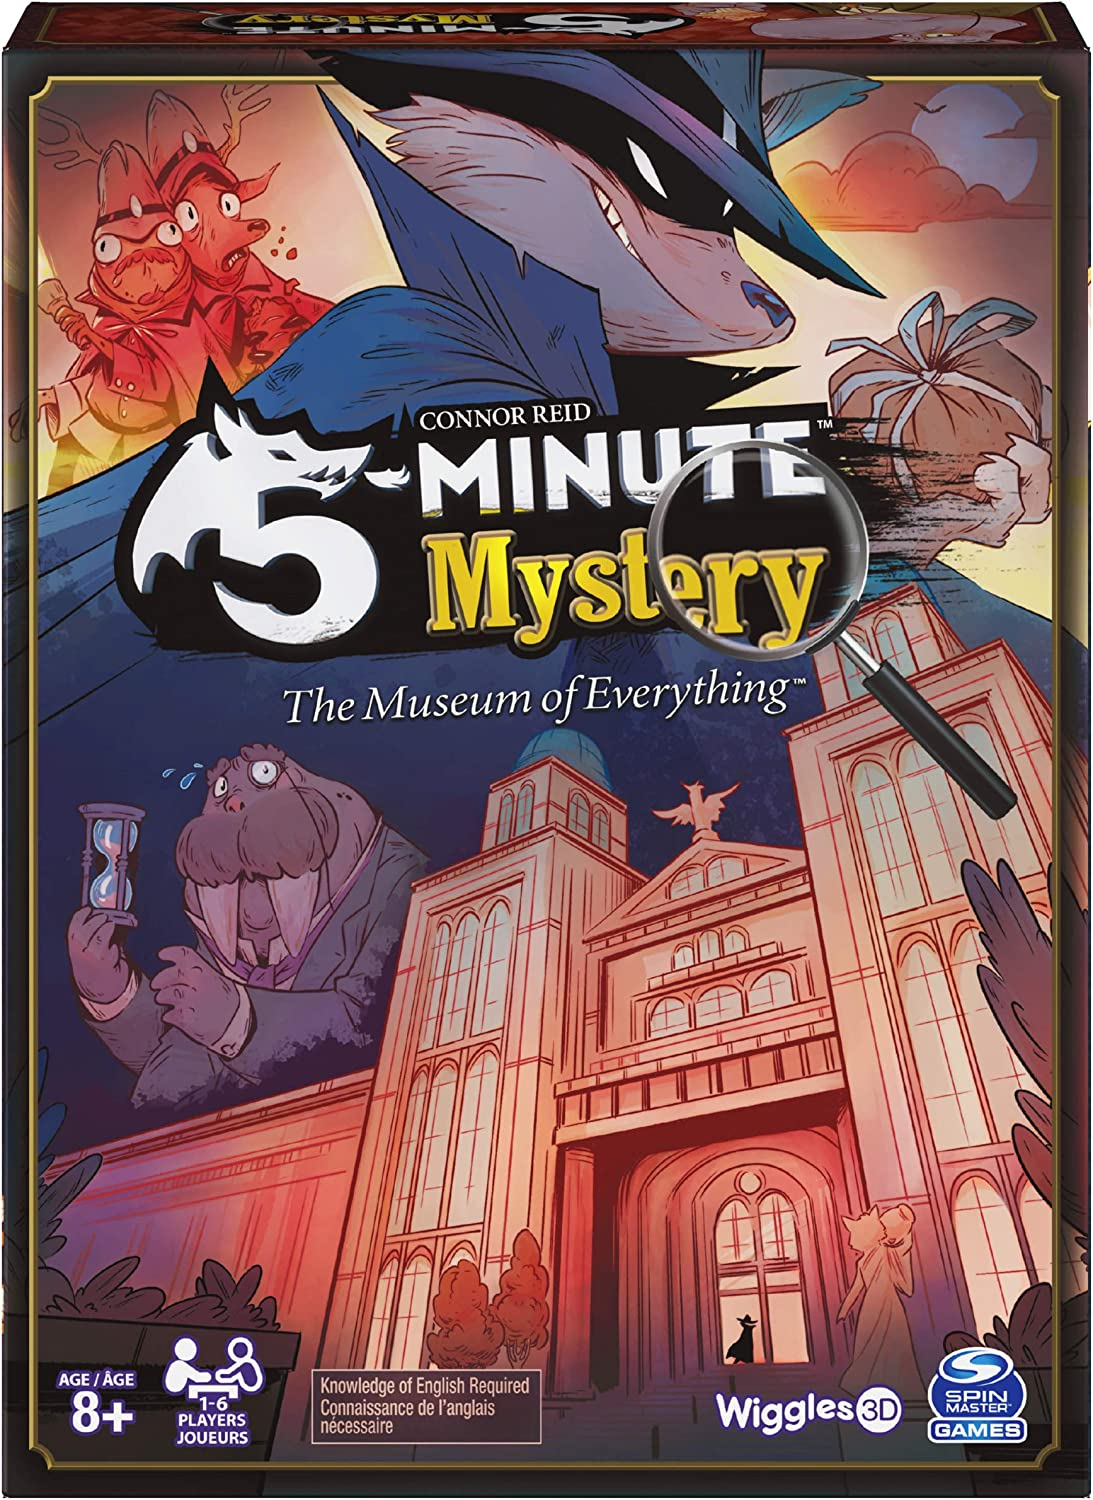 Spin Master Games 5-Minute Mystery The Museum of Everything Game, for Adults and Kids Ages 8 and up